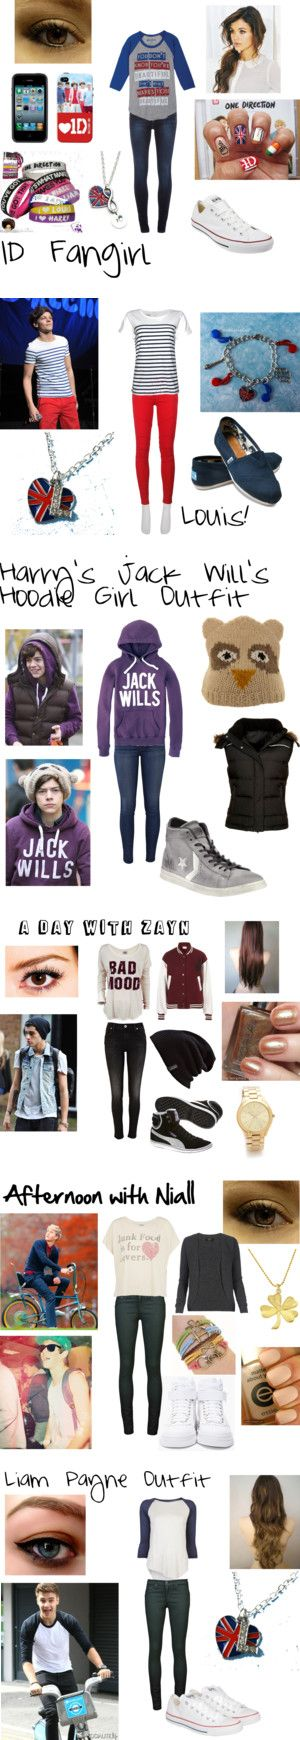 """One Direction Outfits!!"" by sofianedu ❤ liked on Polyvore"